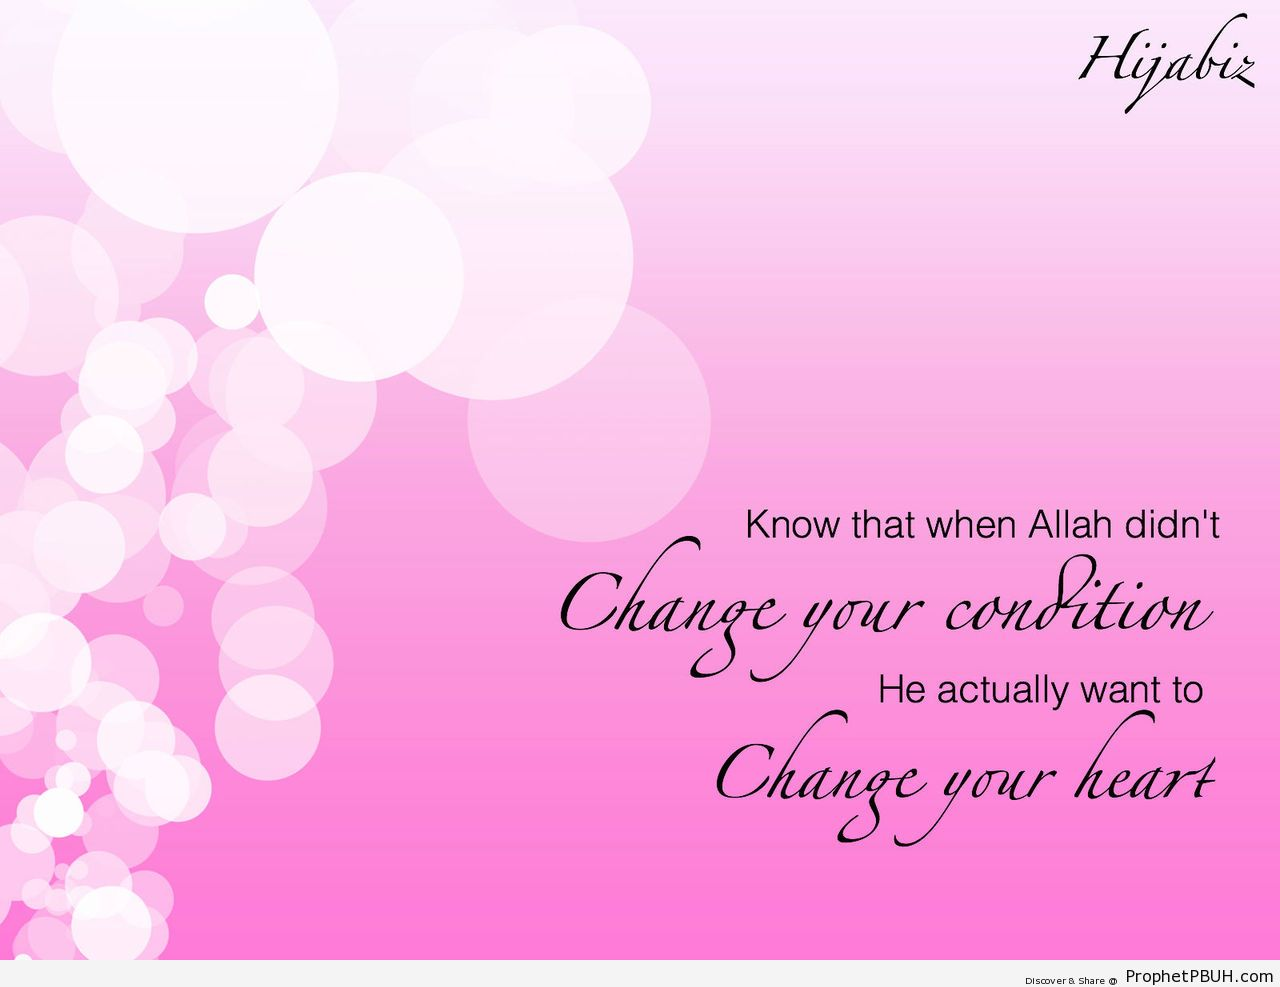 Ponder back again and again why Allah... - Islamic Quotes, Hadiths, Duas